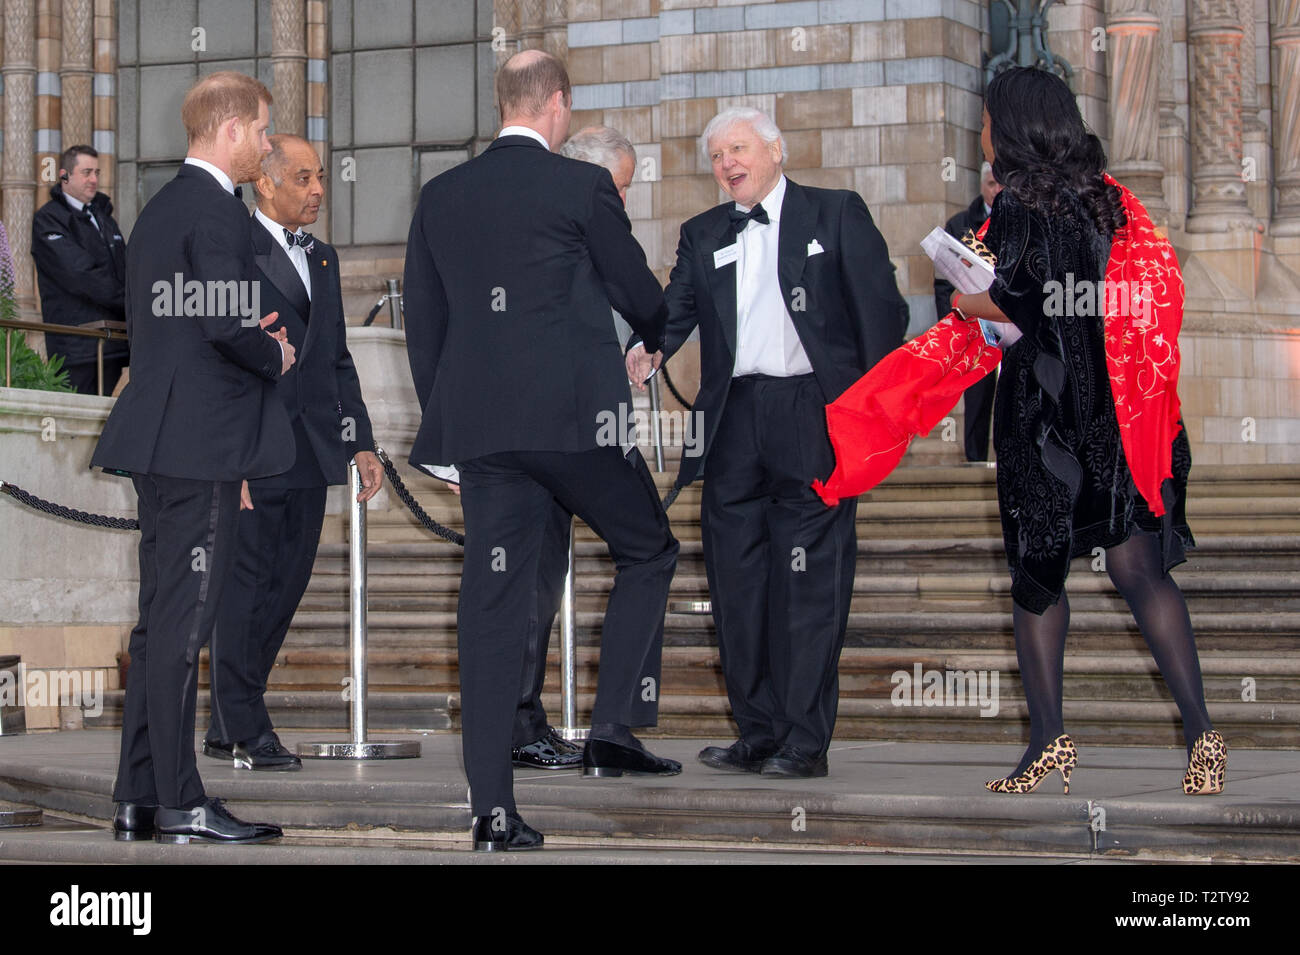 London, United Kingdom. 4 April 2019. Prince William, Prince Harry & Prince Charles are greeted by Sir David Attenborough at the global premiere of 'Our Planet' presented by Netflix. Credit: Peter Manning/Alamy Live News Stock Photo